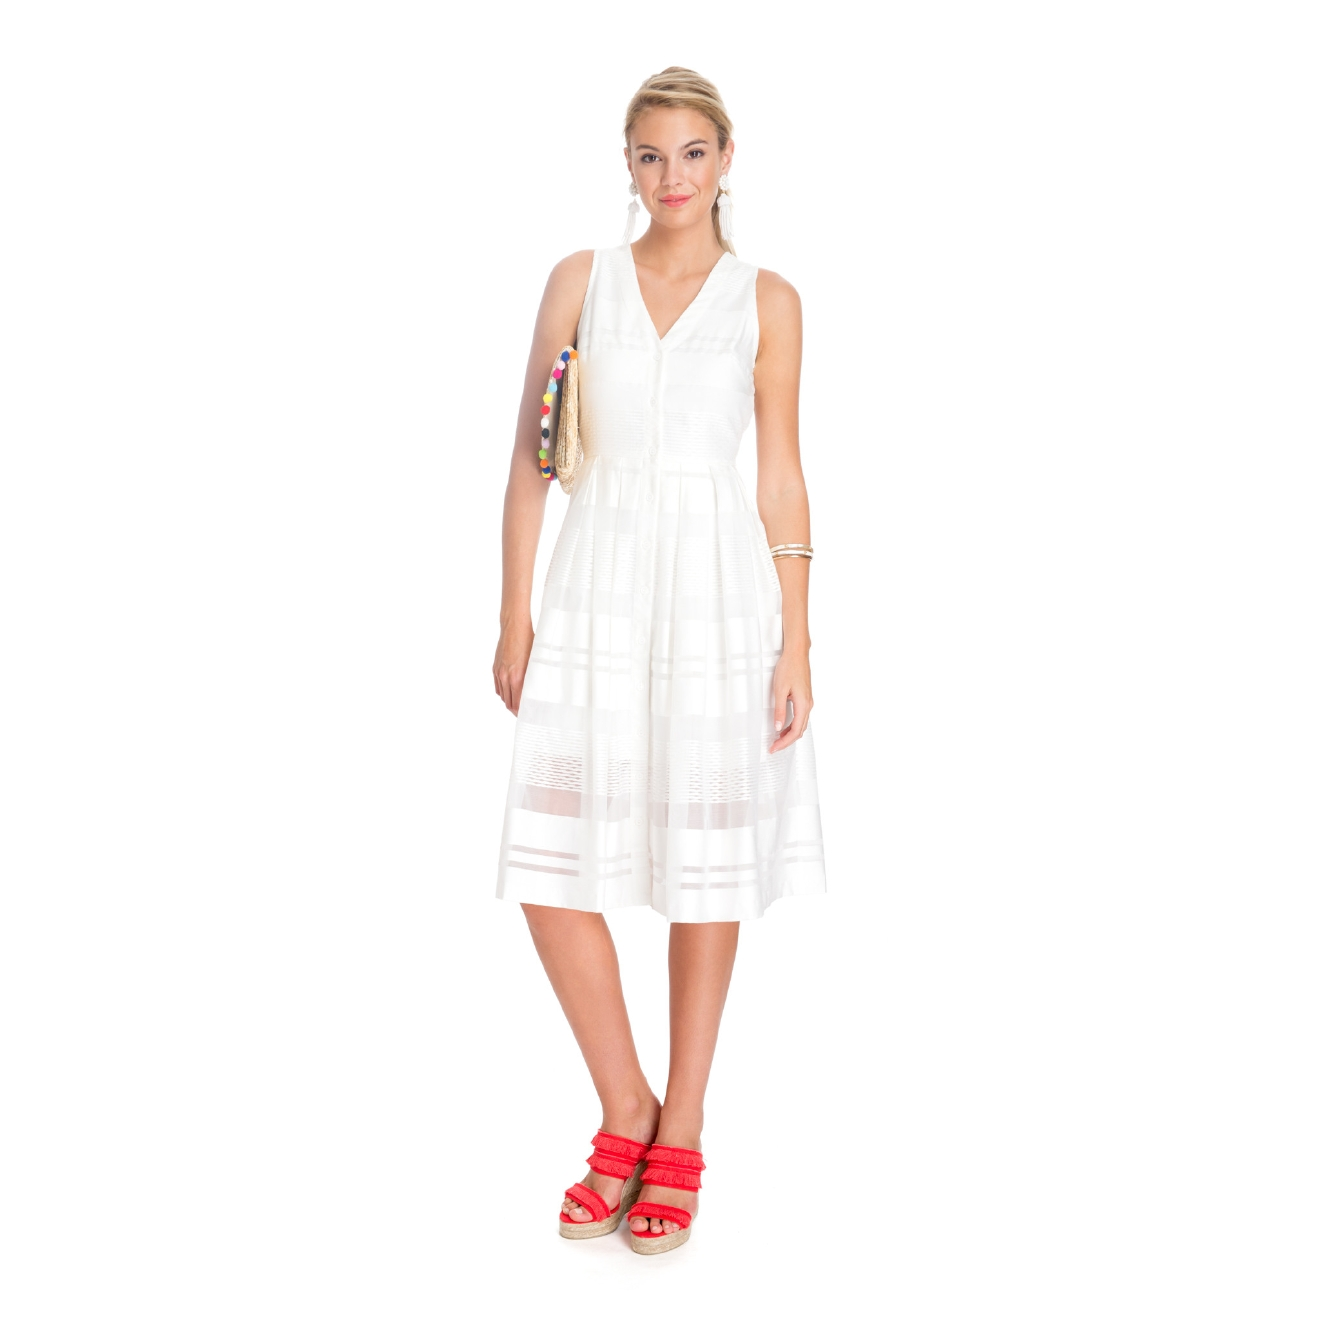 Erin Fetherston Dakota Dress, $175, tuckernuck.com (Image: Courtesy Tuckernuck)